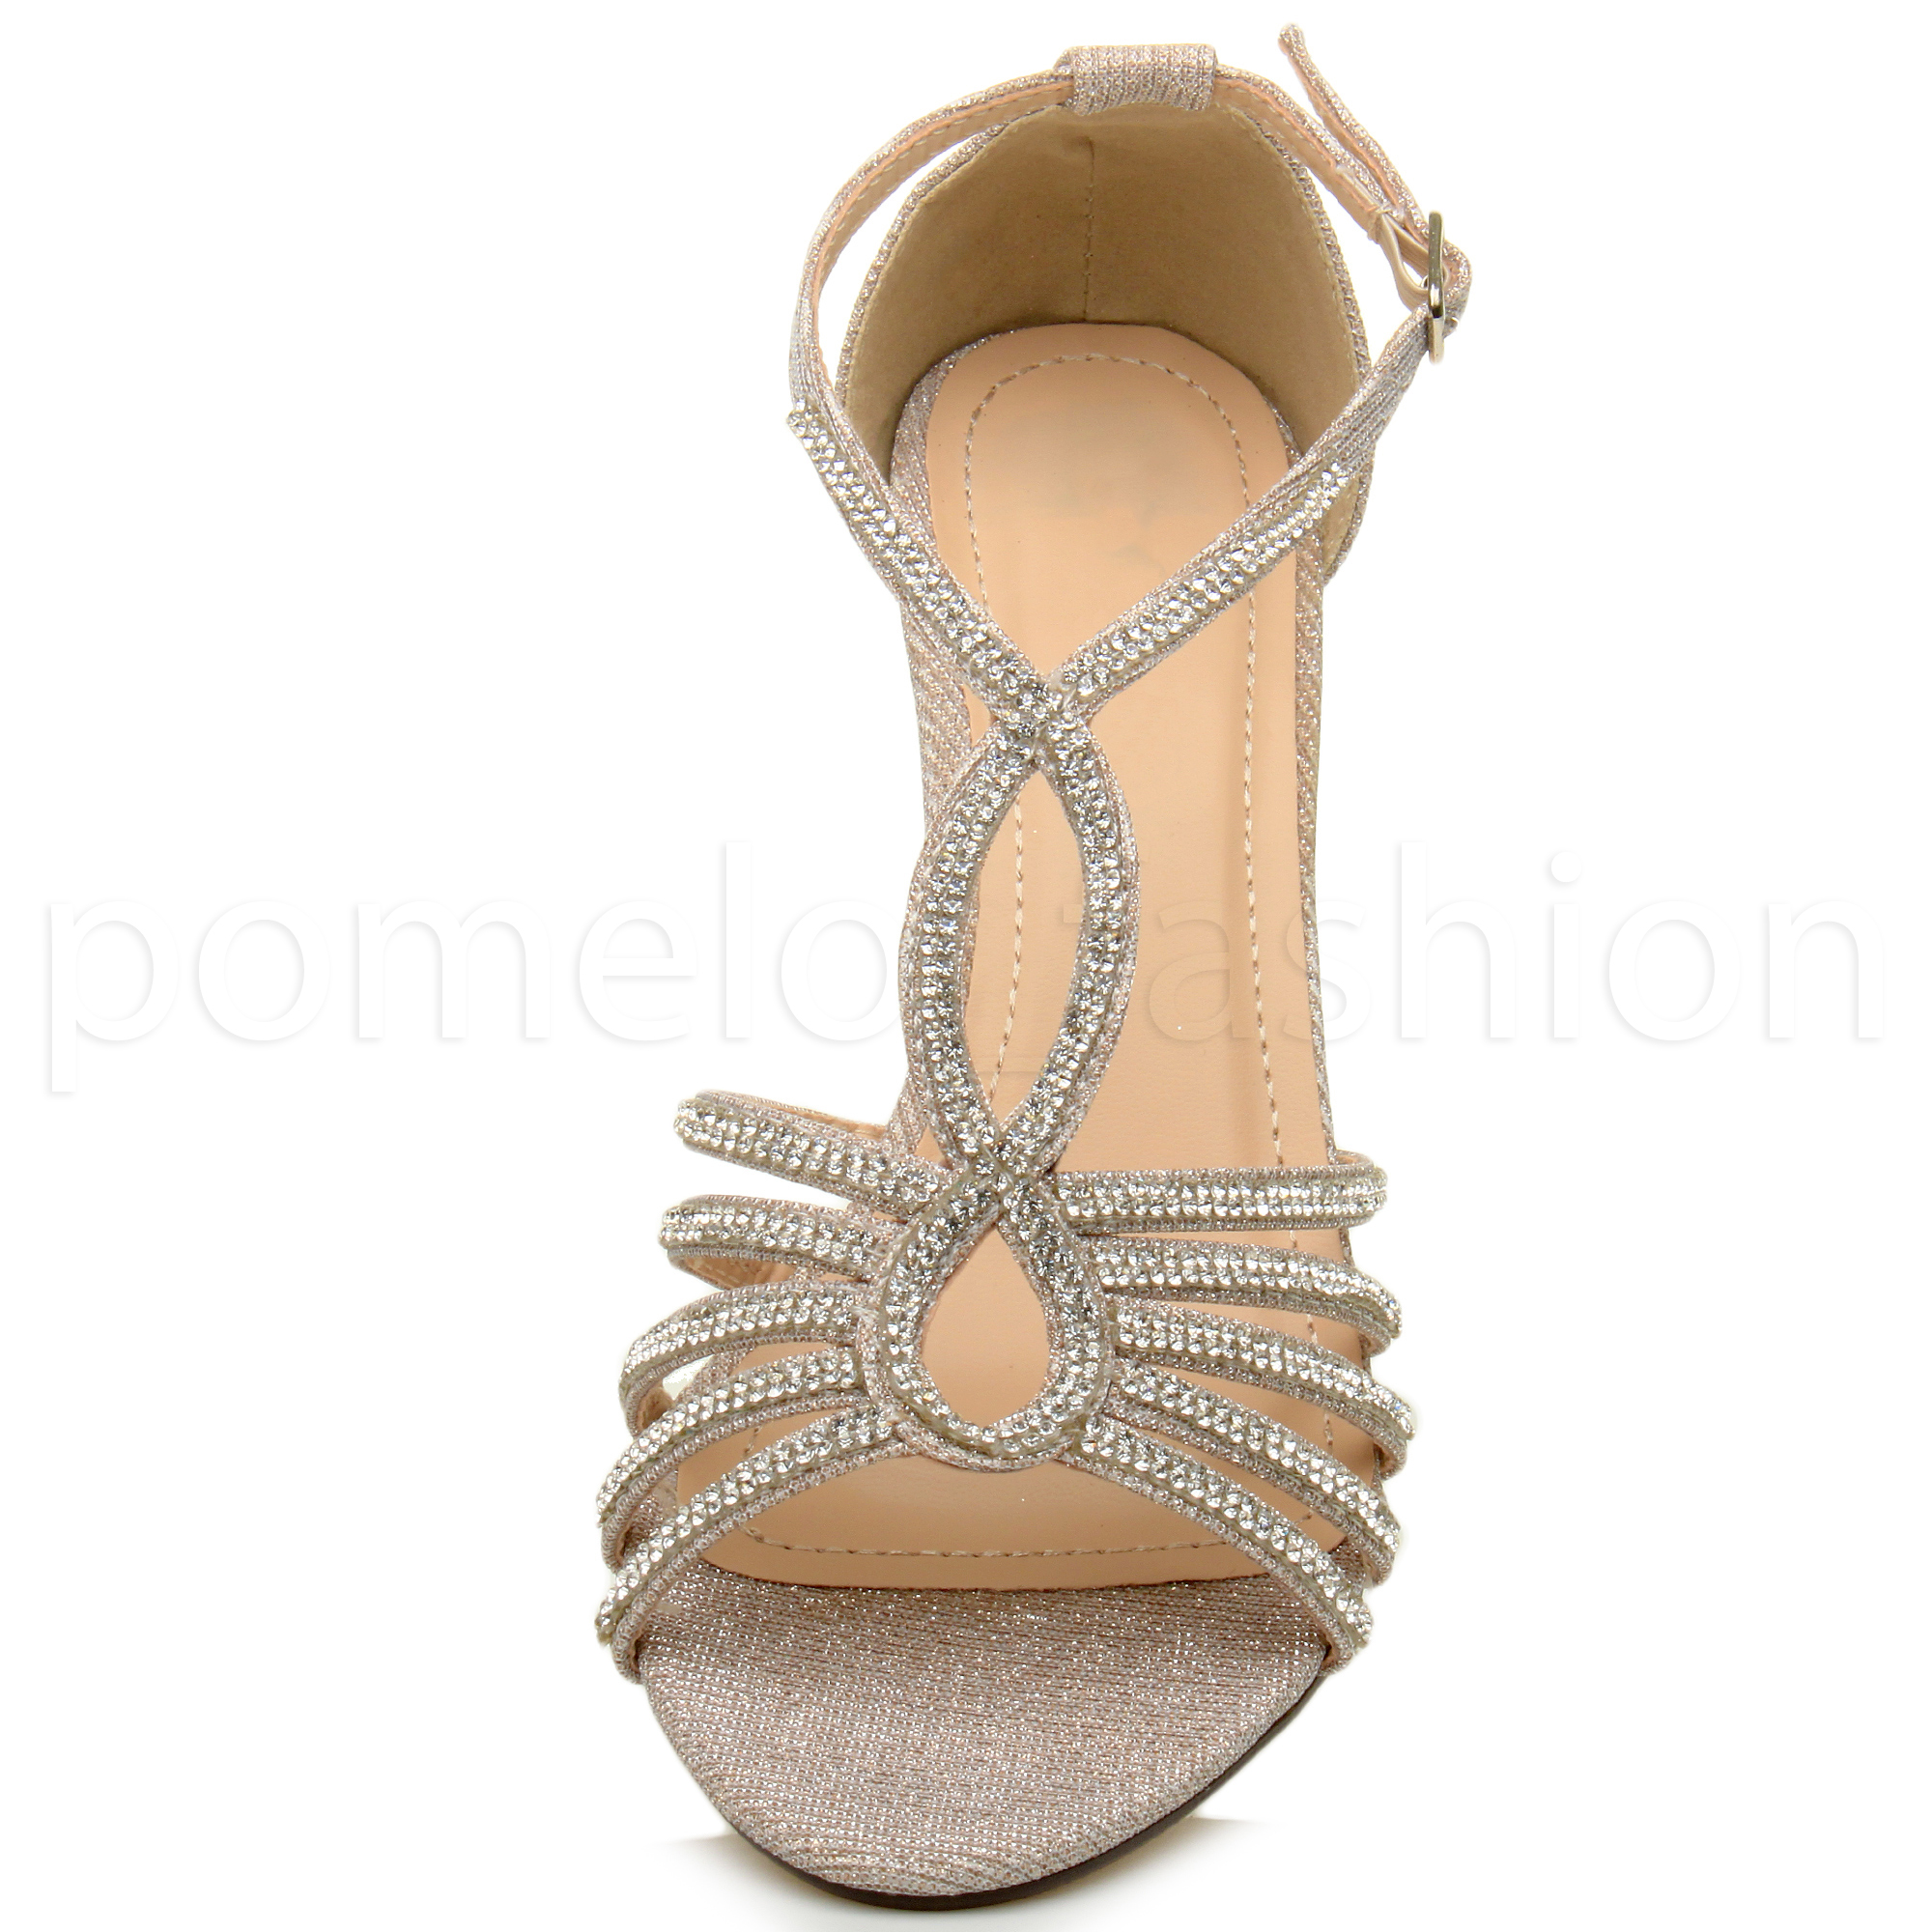 19b7b5f7946 WOMENS LADIES MID HEEL GEMS GLITTER STRAPPY BRIDAL CUT OUT SANDALS ...